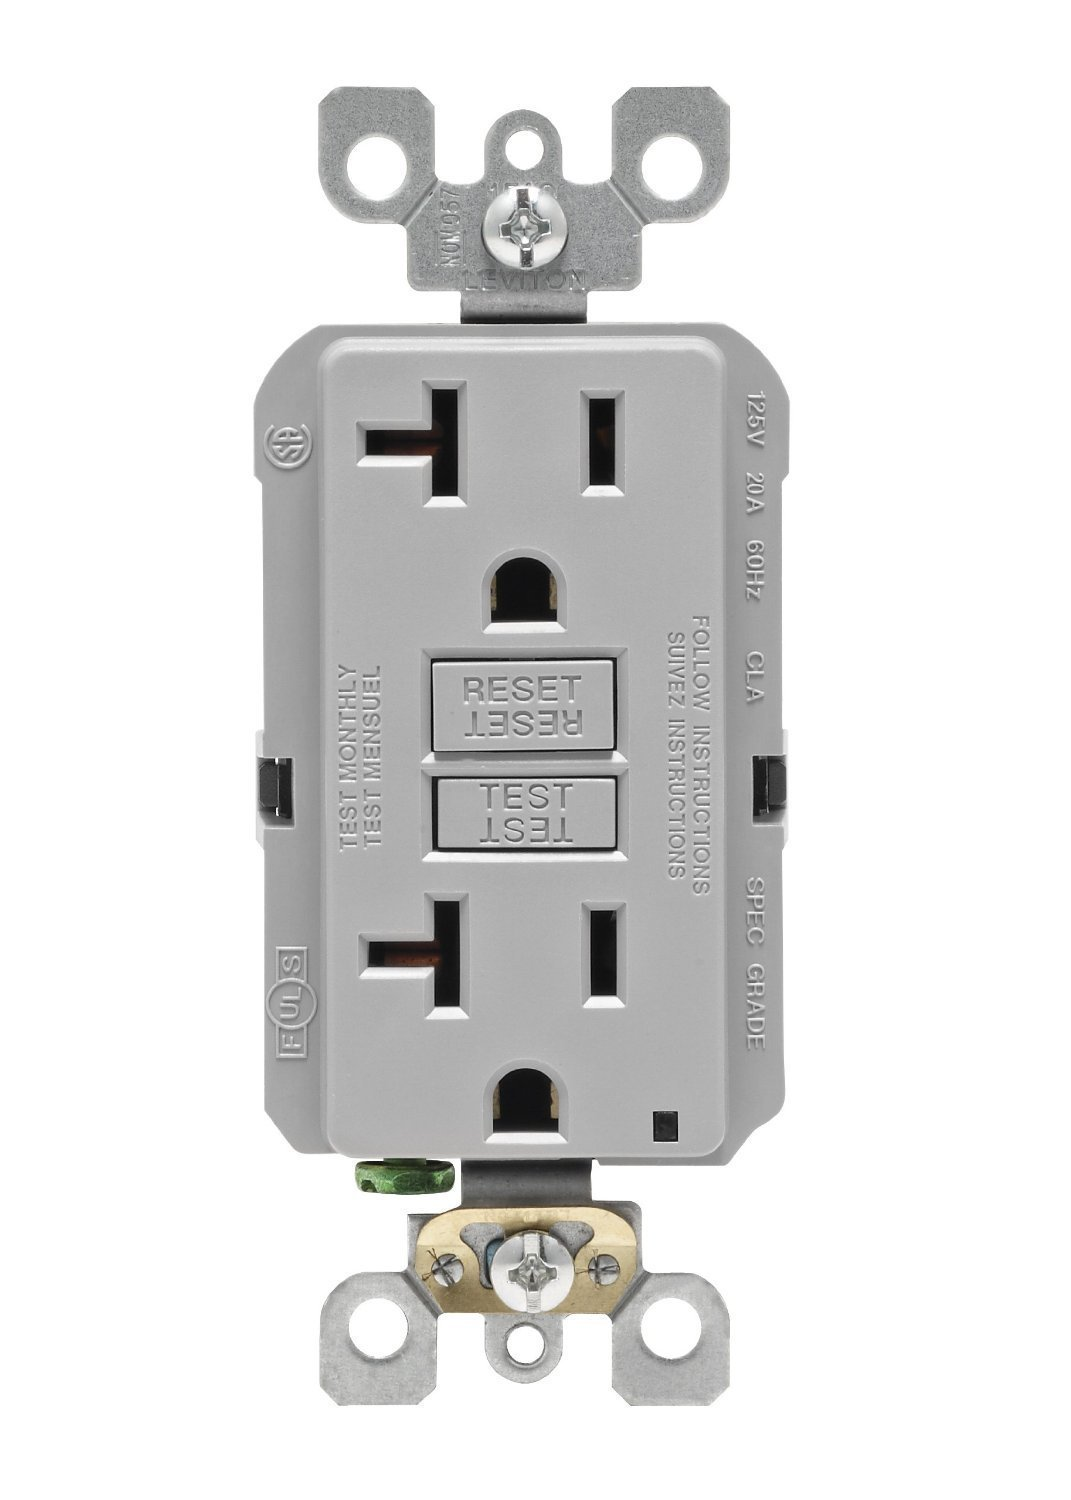 Leviton GFNT2-GY Self-Test Smartlockpro Slim GFCI Non-Tamper-Resistant Receptacle with LED Indicator, 20-Amp, 10 Pack, Gray